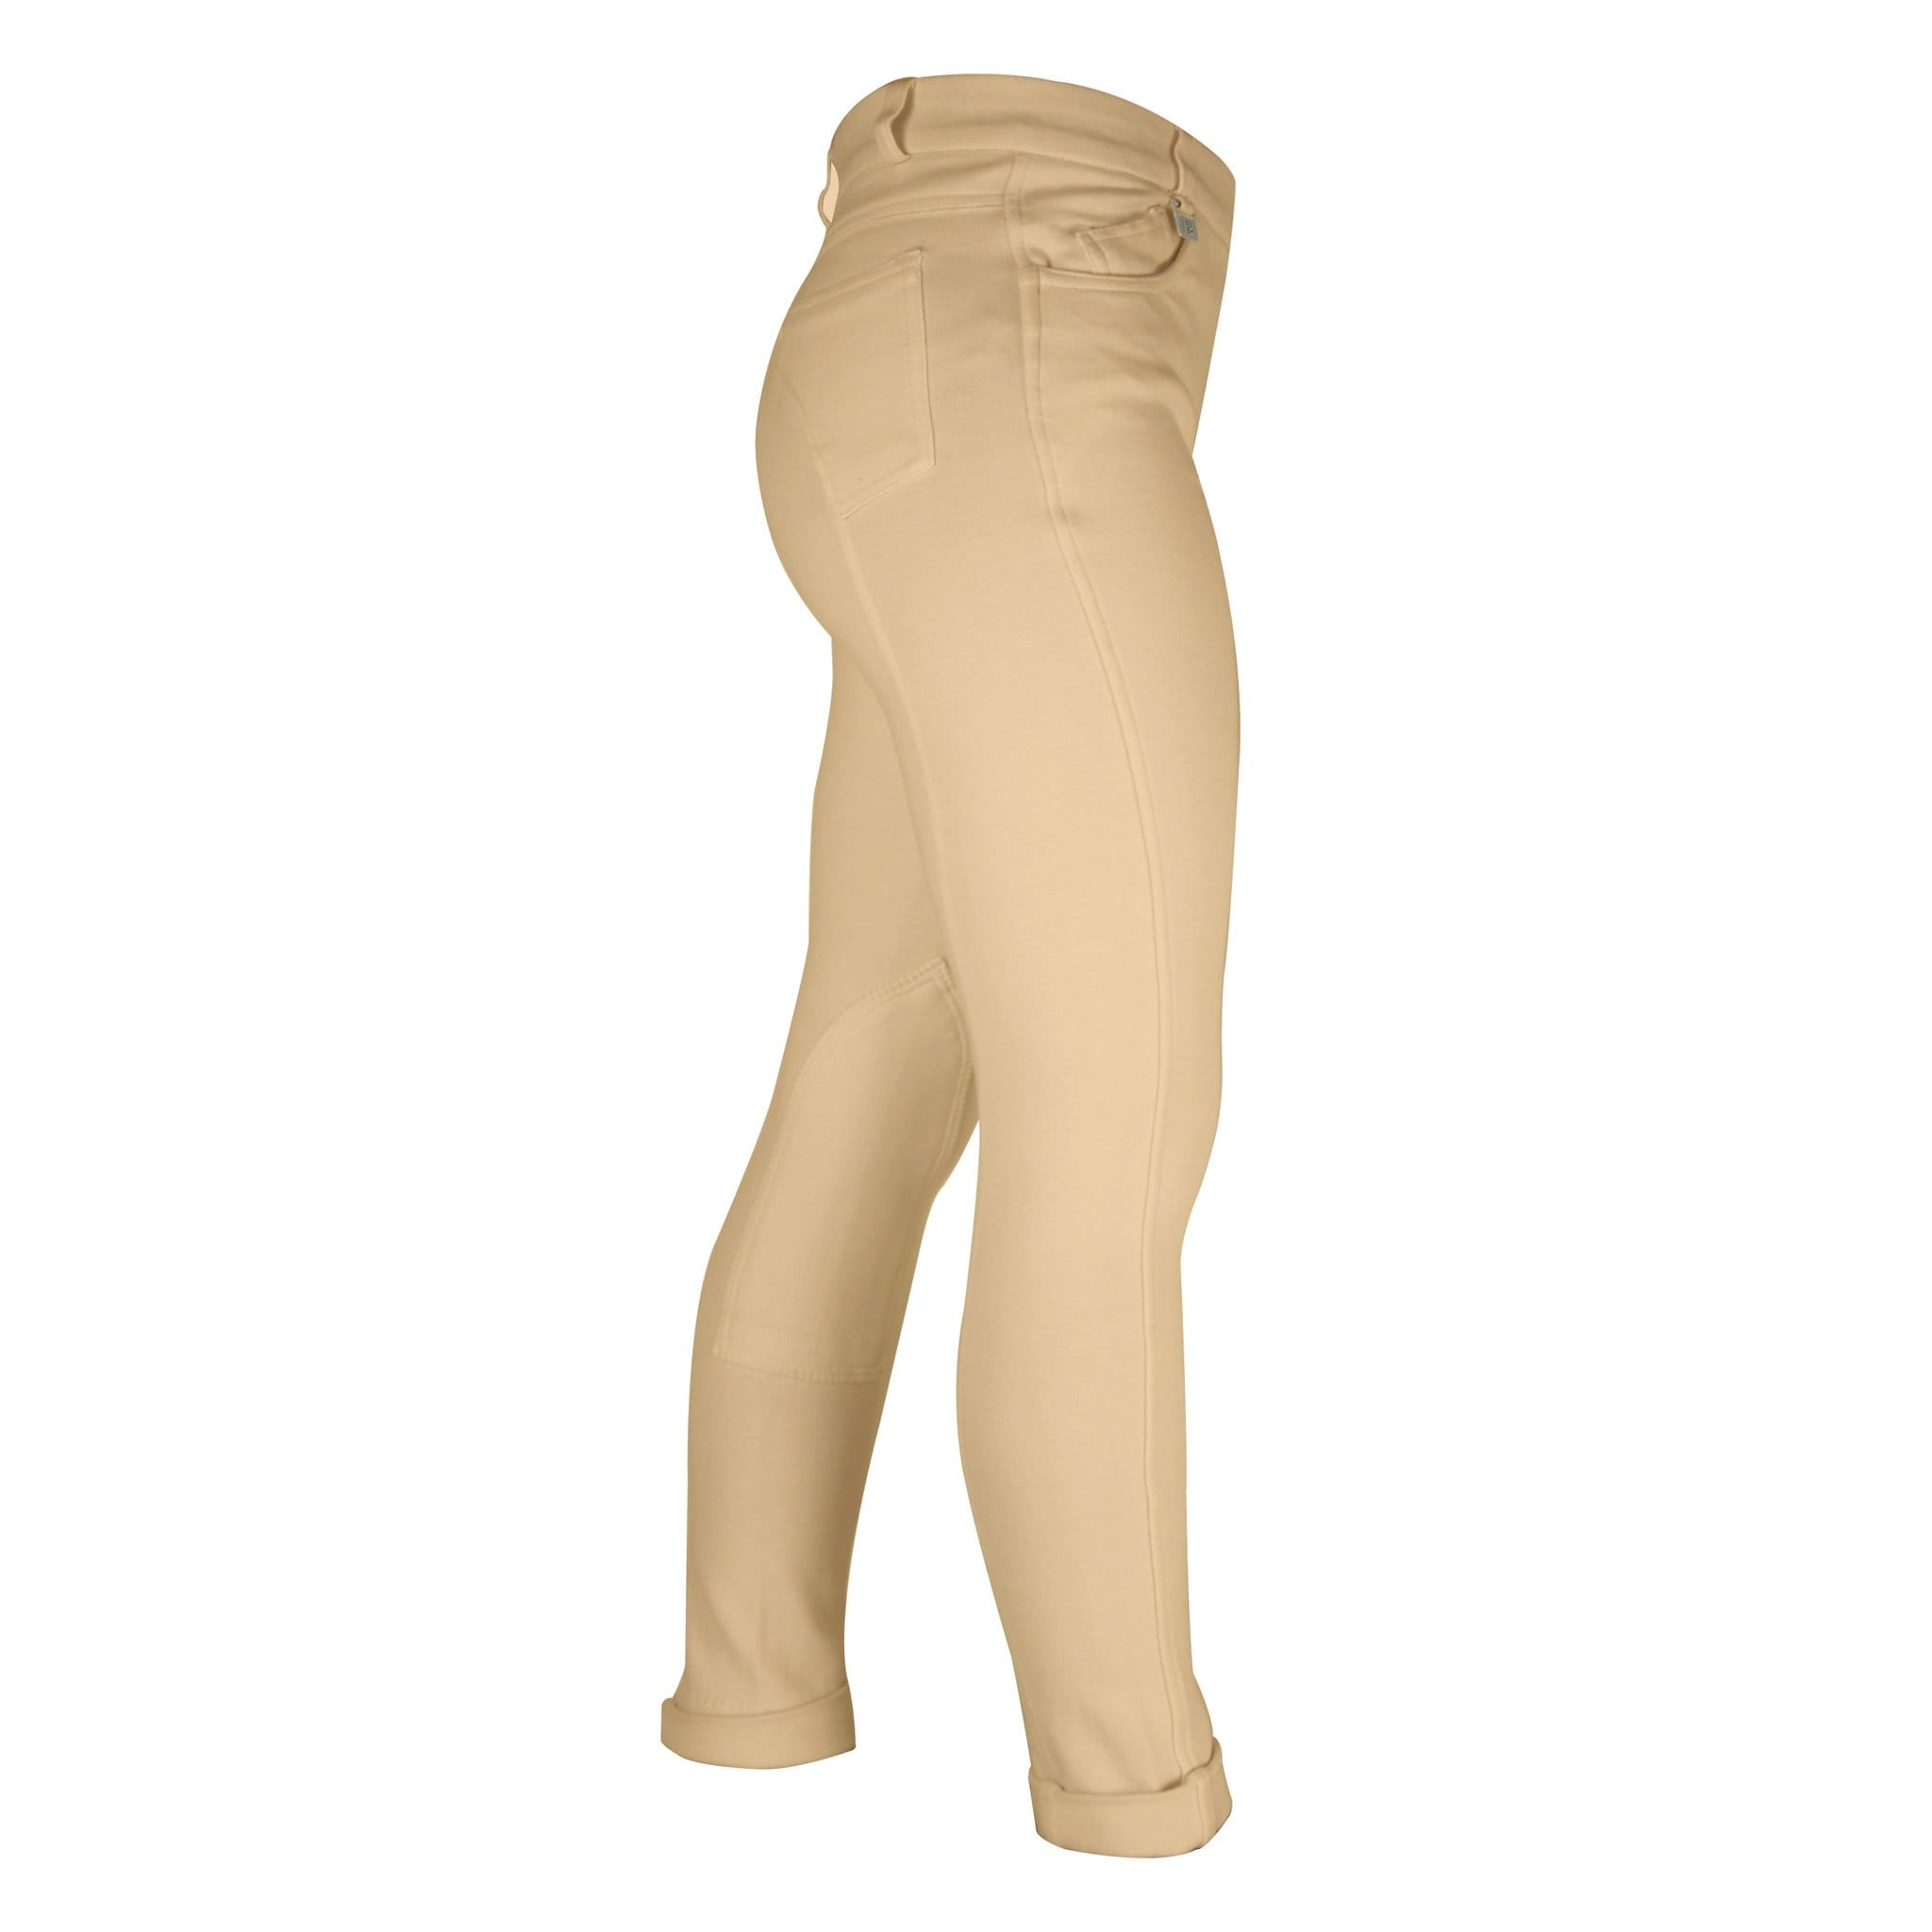 HyPerformance Children's Melton Full Seat Jodhpurs Side View in Beige 1336